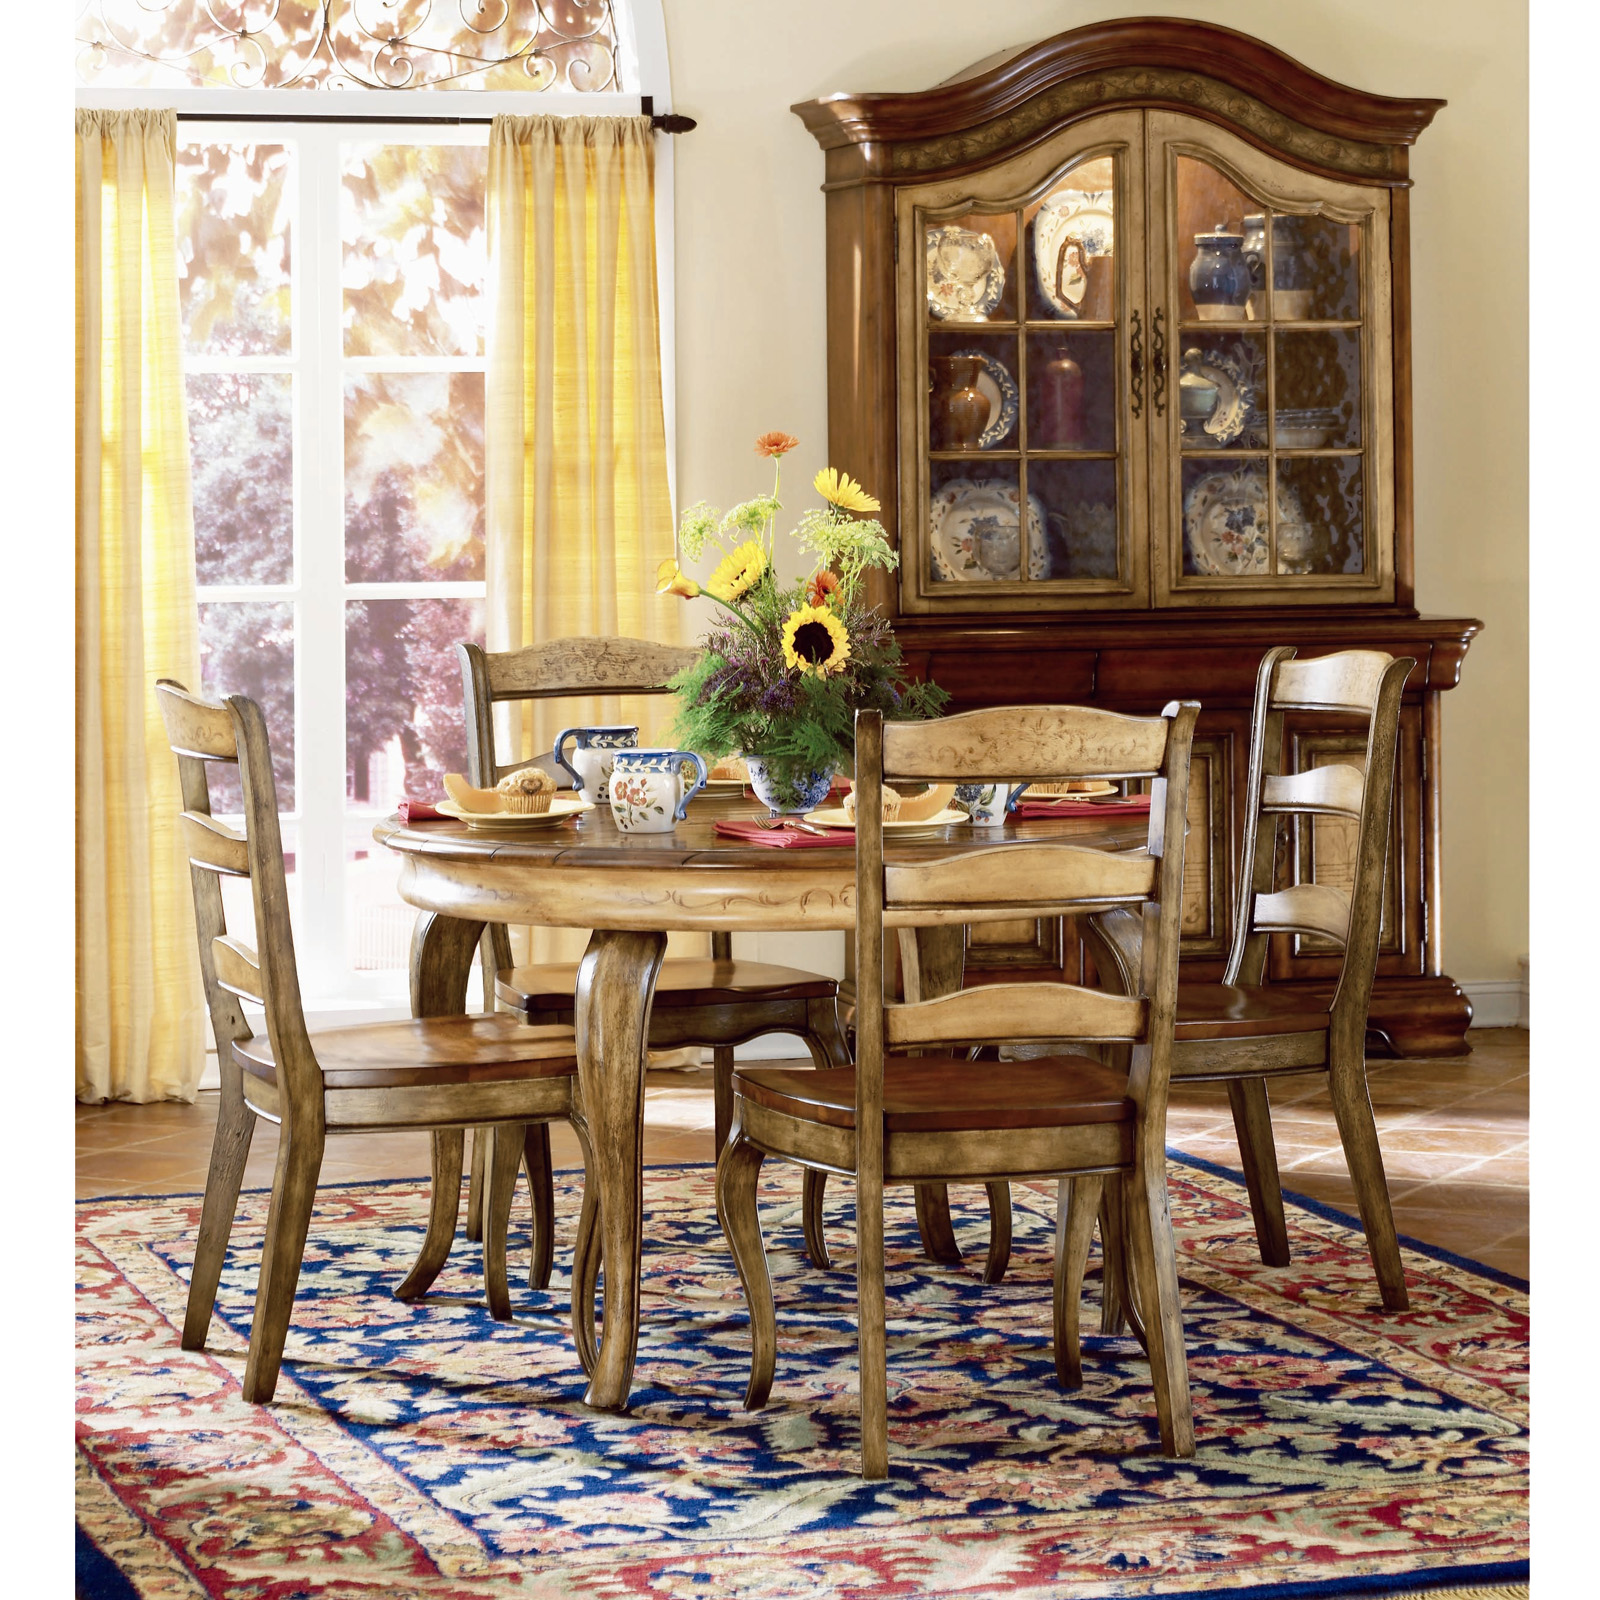 French Country Dining Room Furniture: Hooker Furniture Vineyard 5 Piece Round Dining Table Set